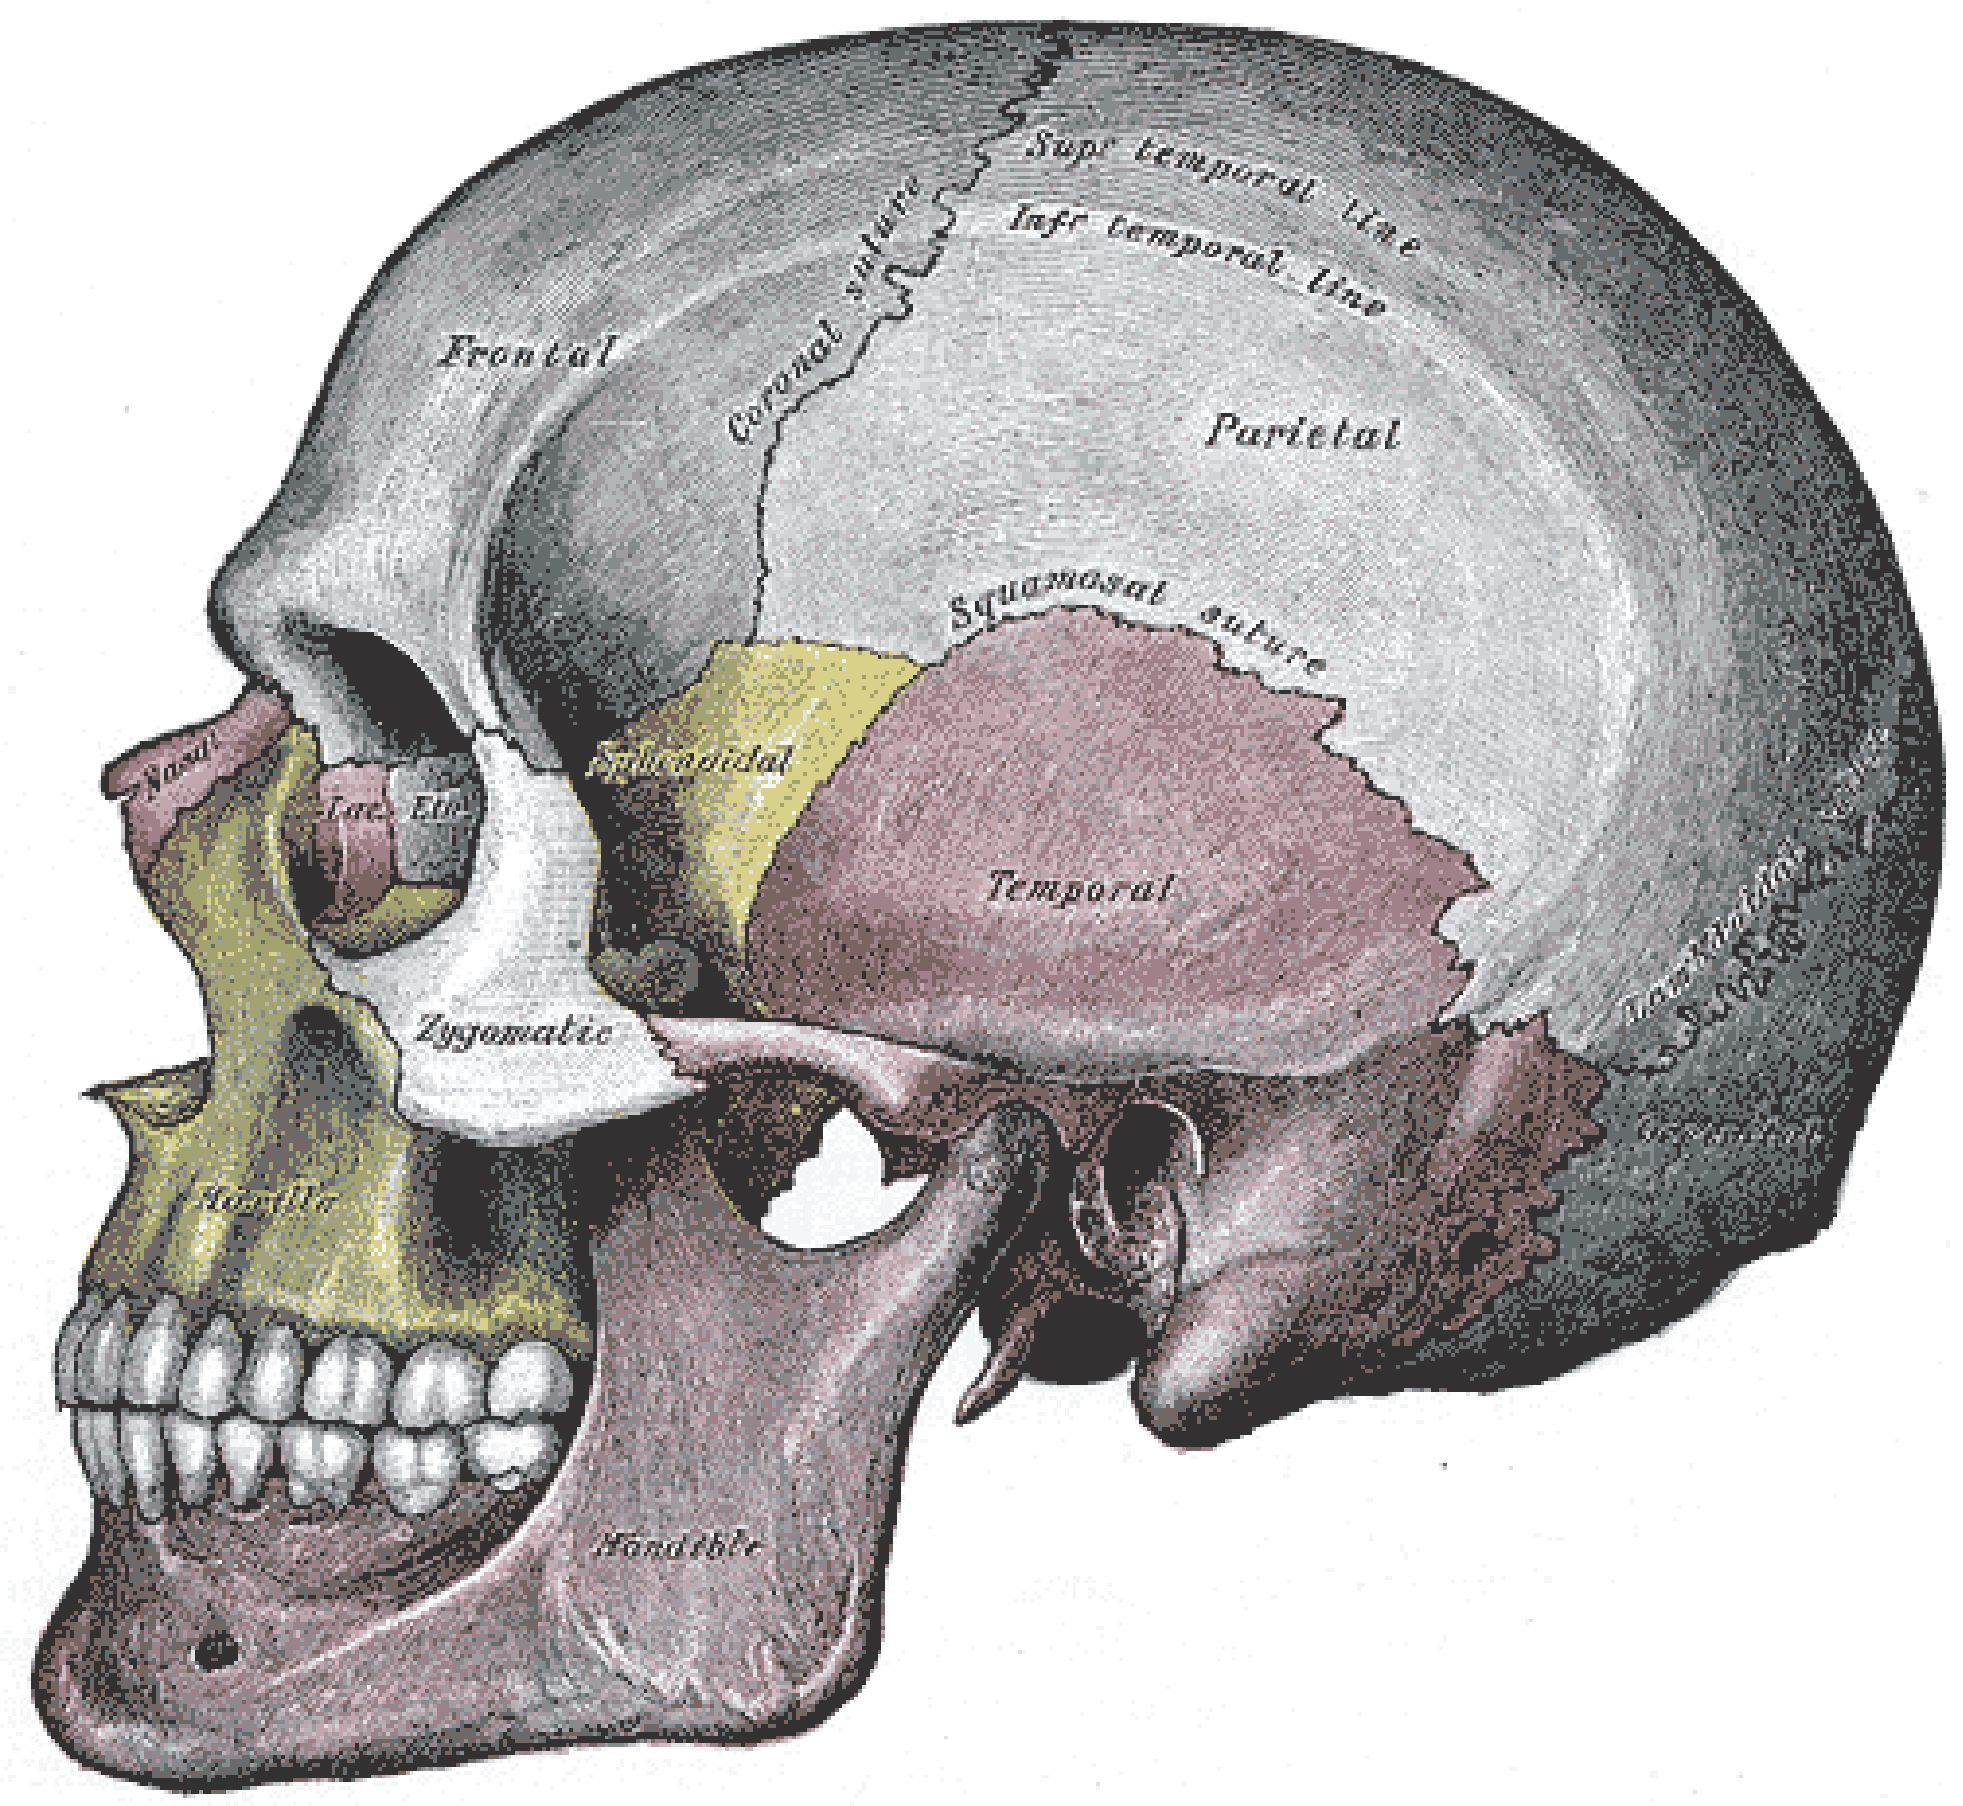 this image shows a side view of the human skull. the major parts, Human Body